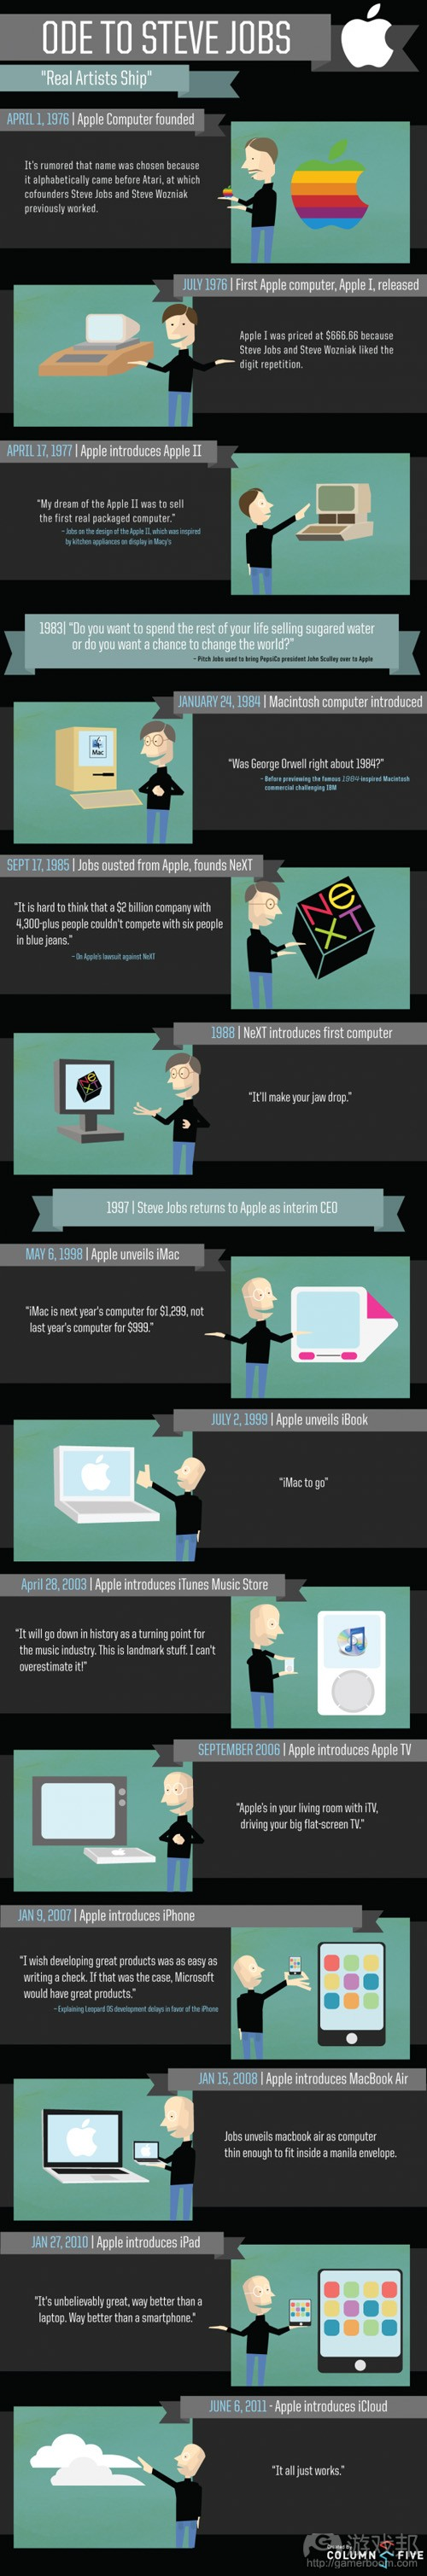 ode to steve jobs(from gigaom)